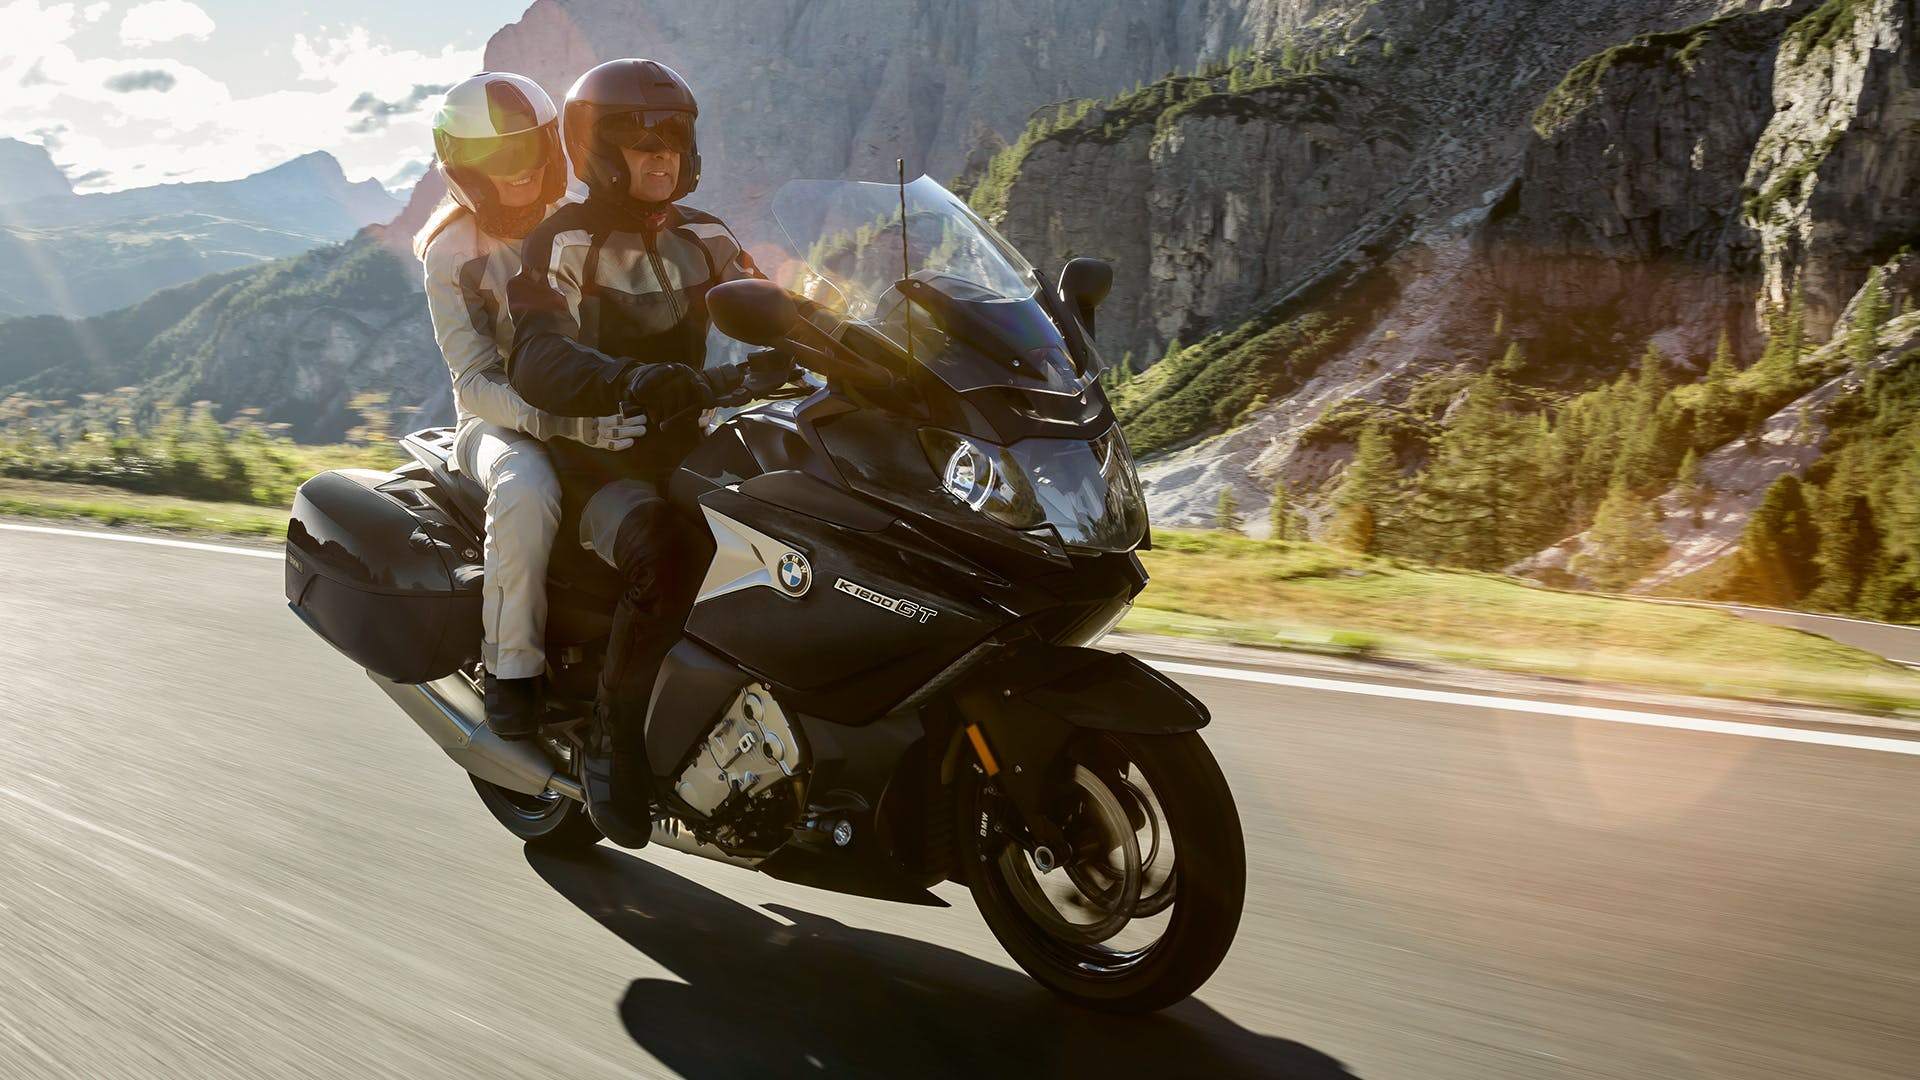 BMW K 1600 GT being ridden on the hill road with a passenger